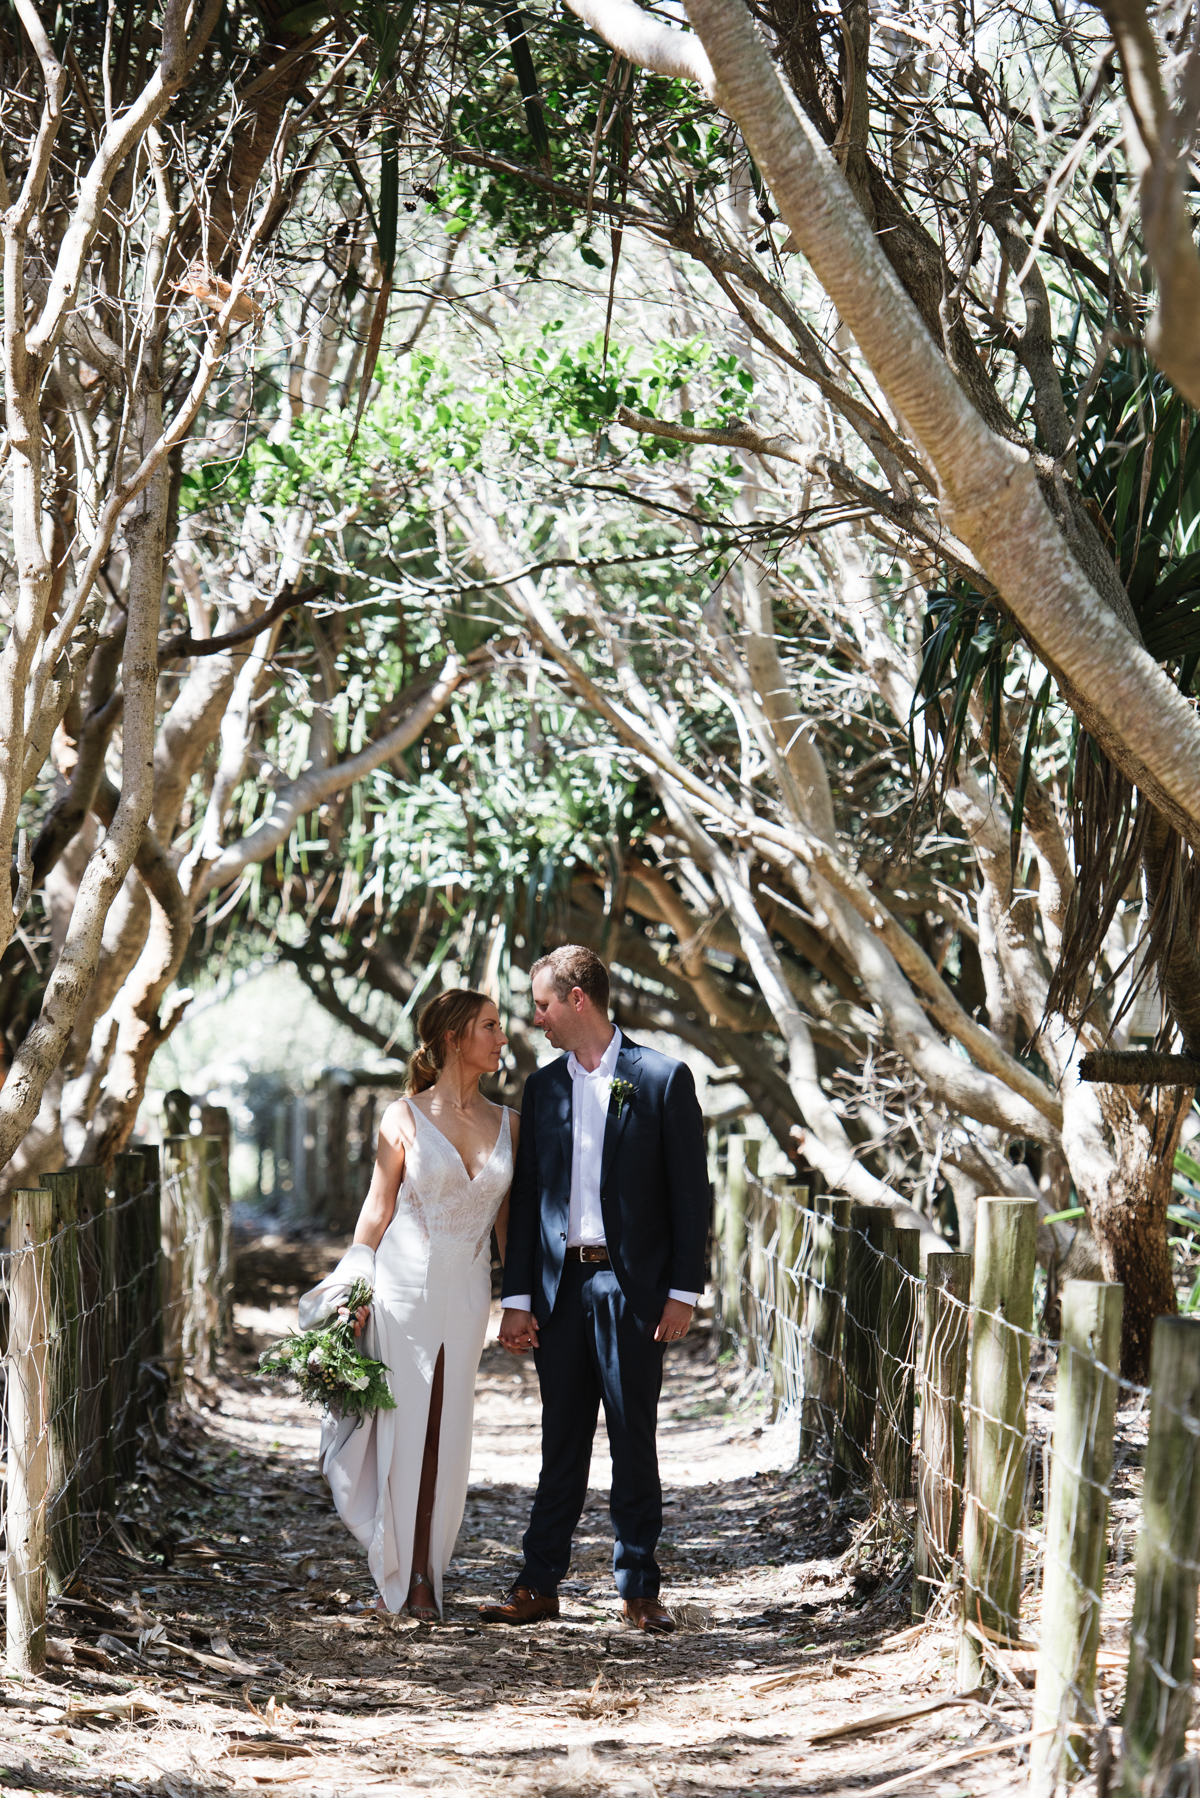 Jo and Andrew- wedding photographer, byron bay wedding and family photographer, tweed heads wedding and family photography-350.jpg